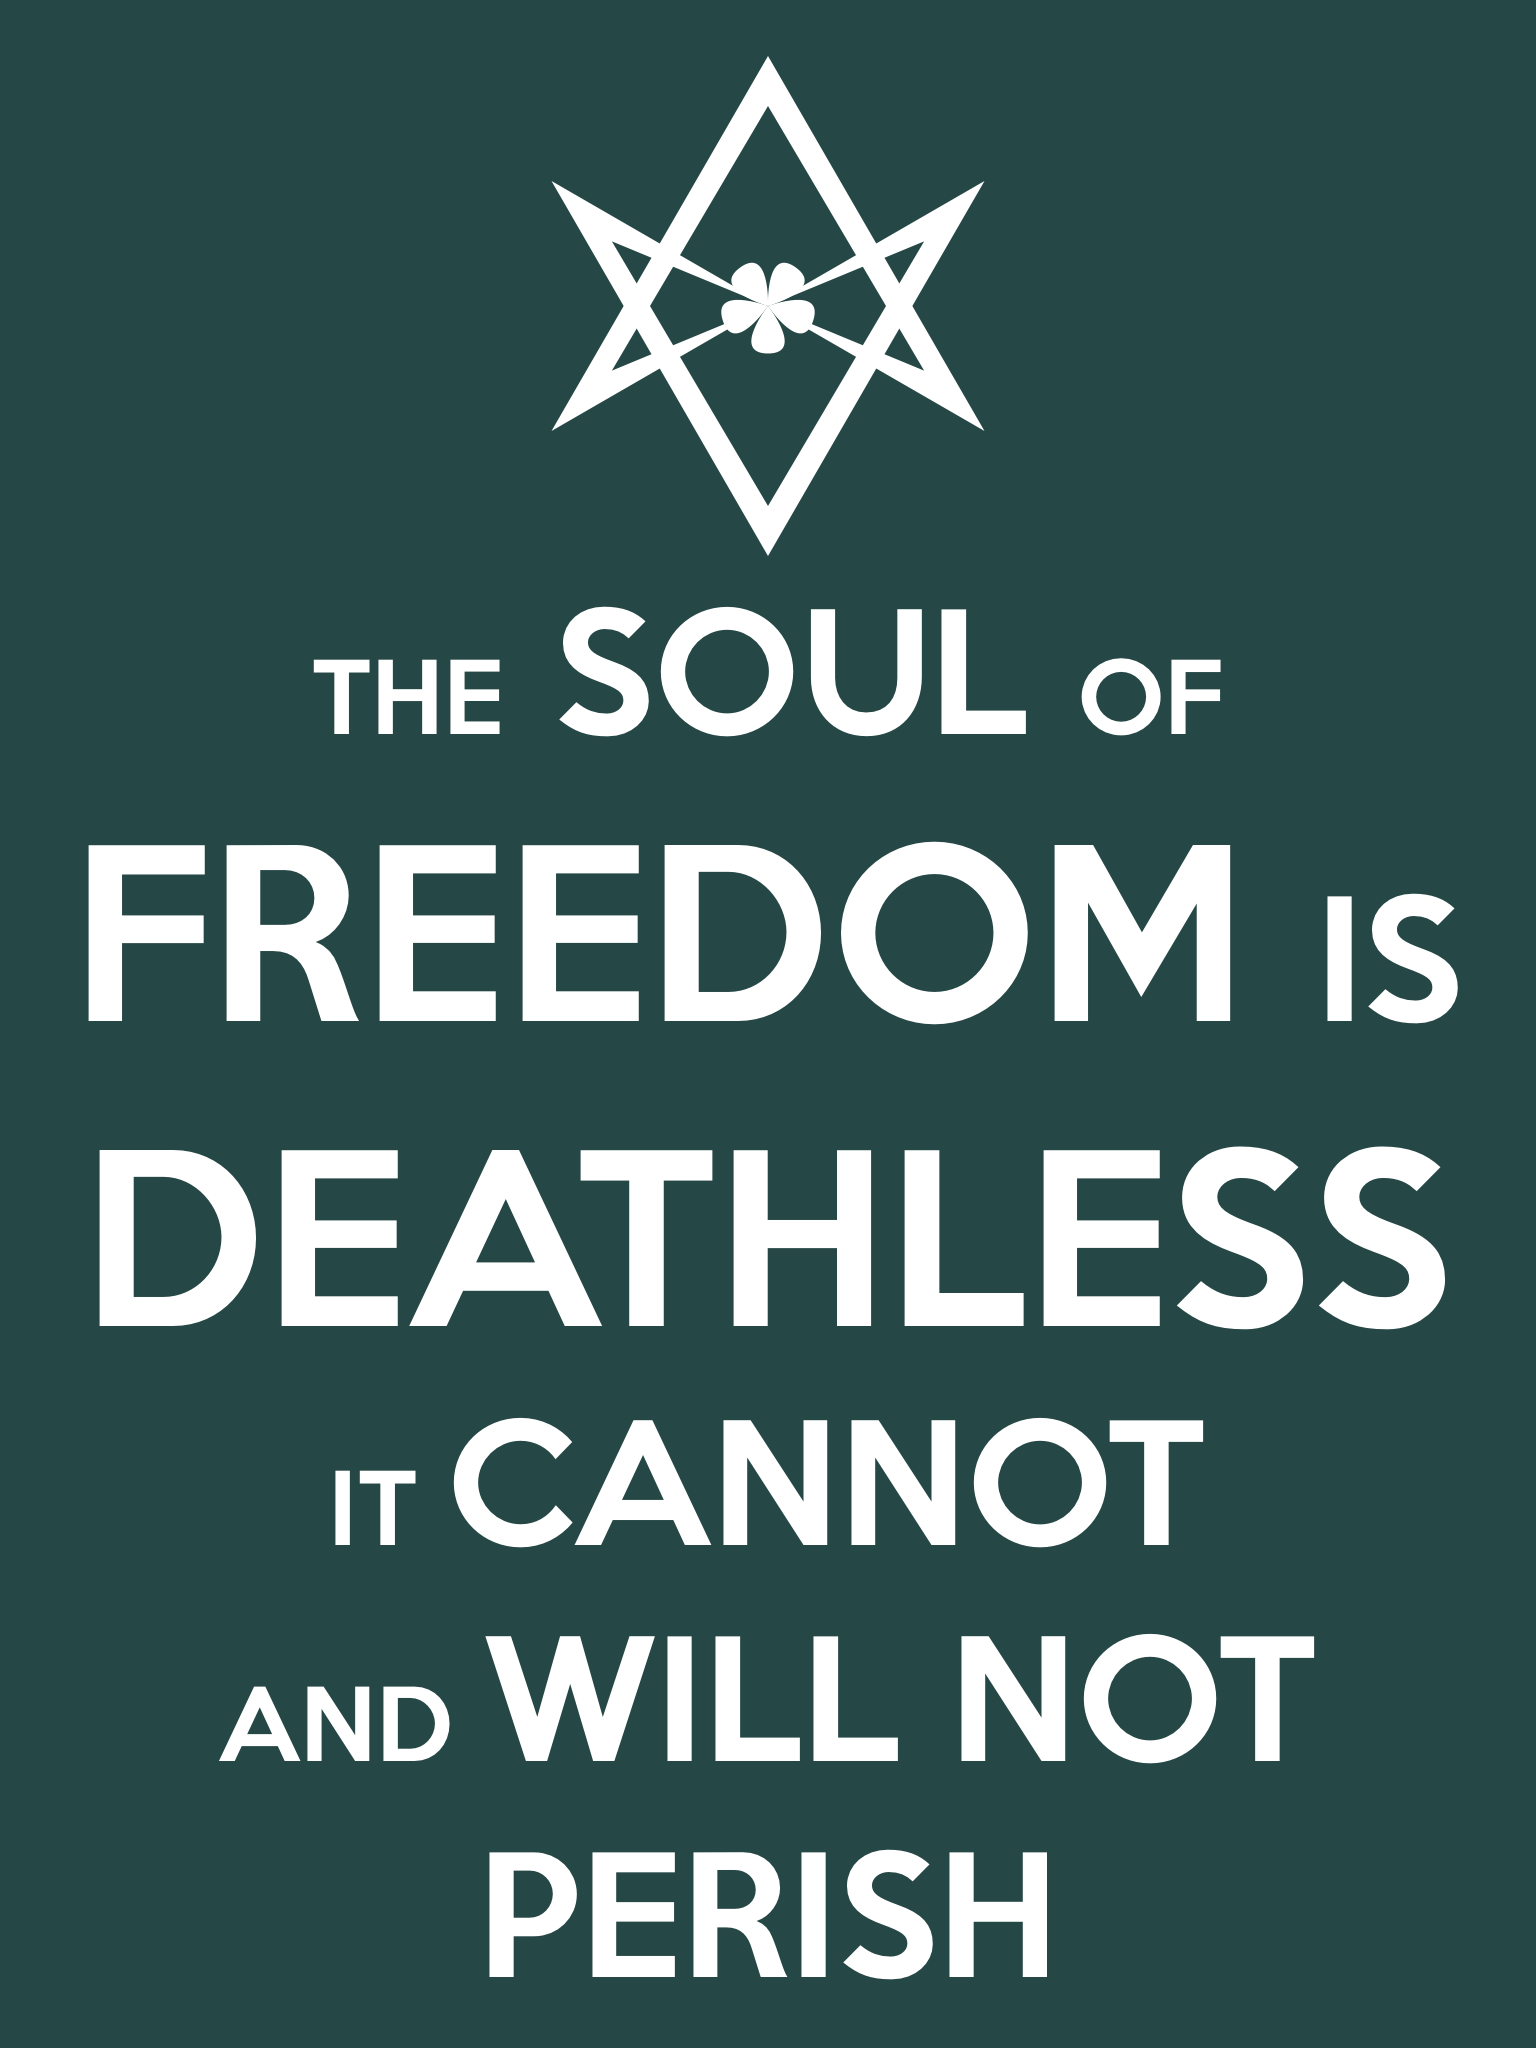 Unicursal FREEDOM IS DEATHLESS poster